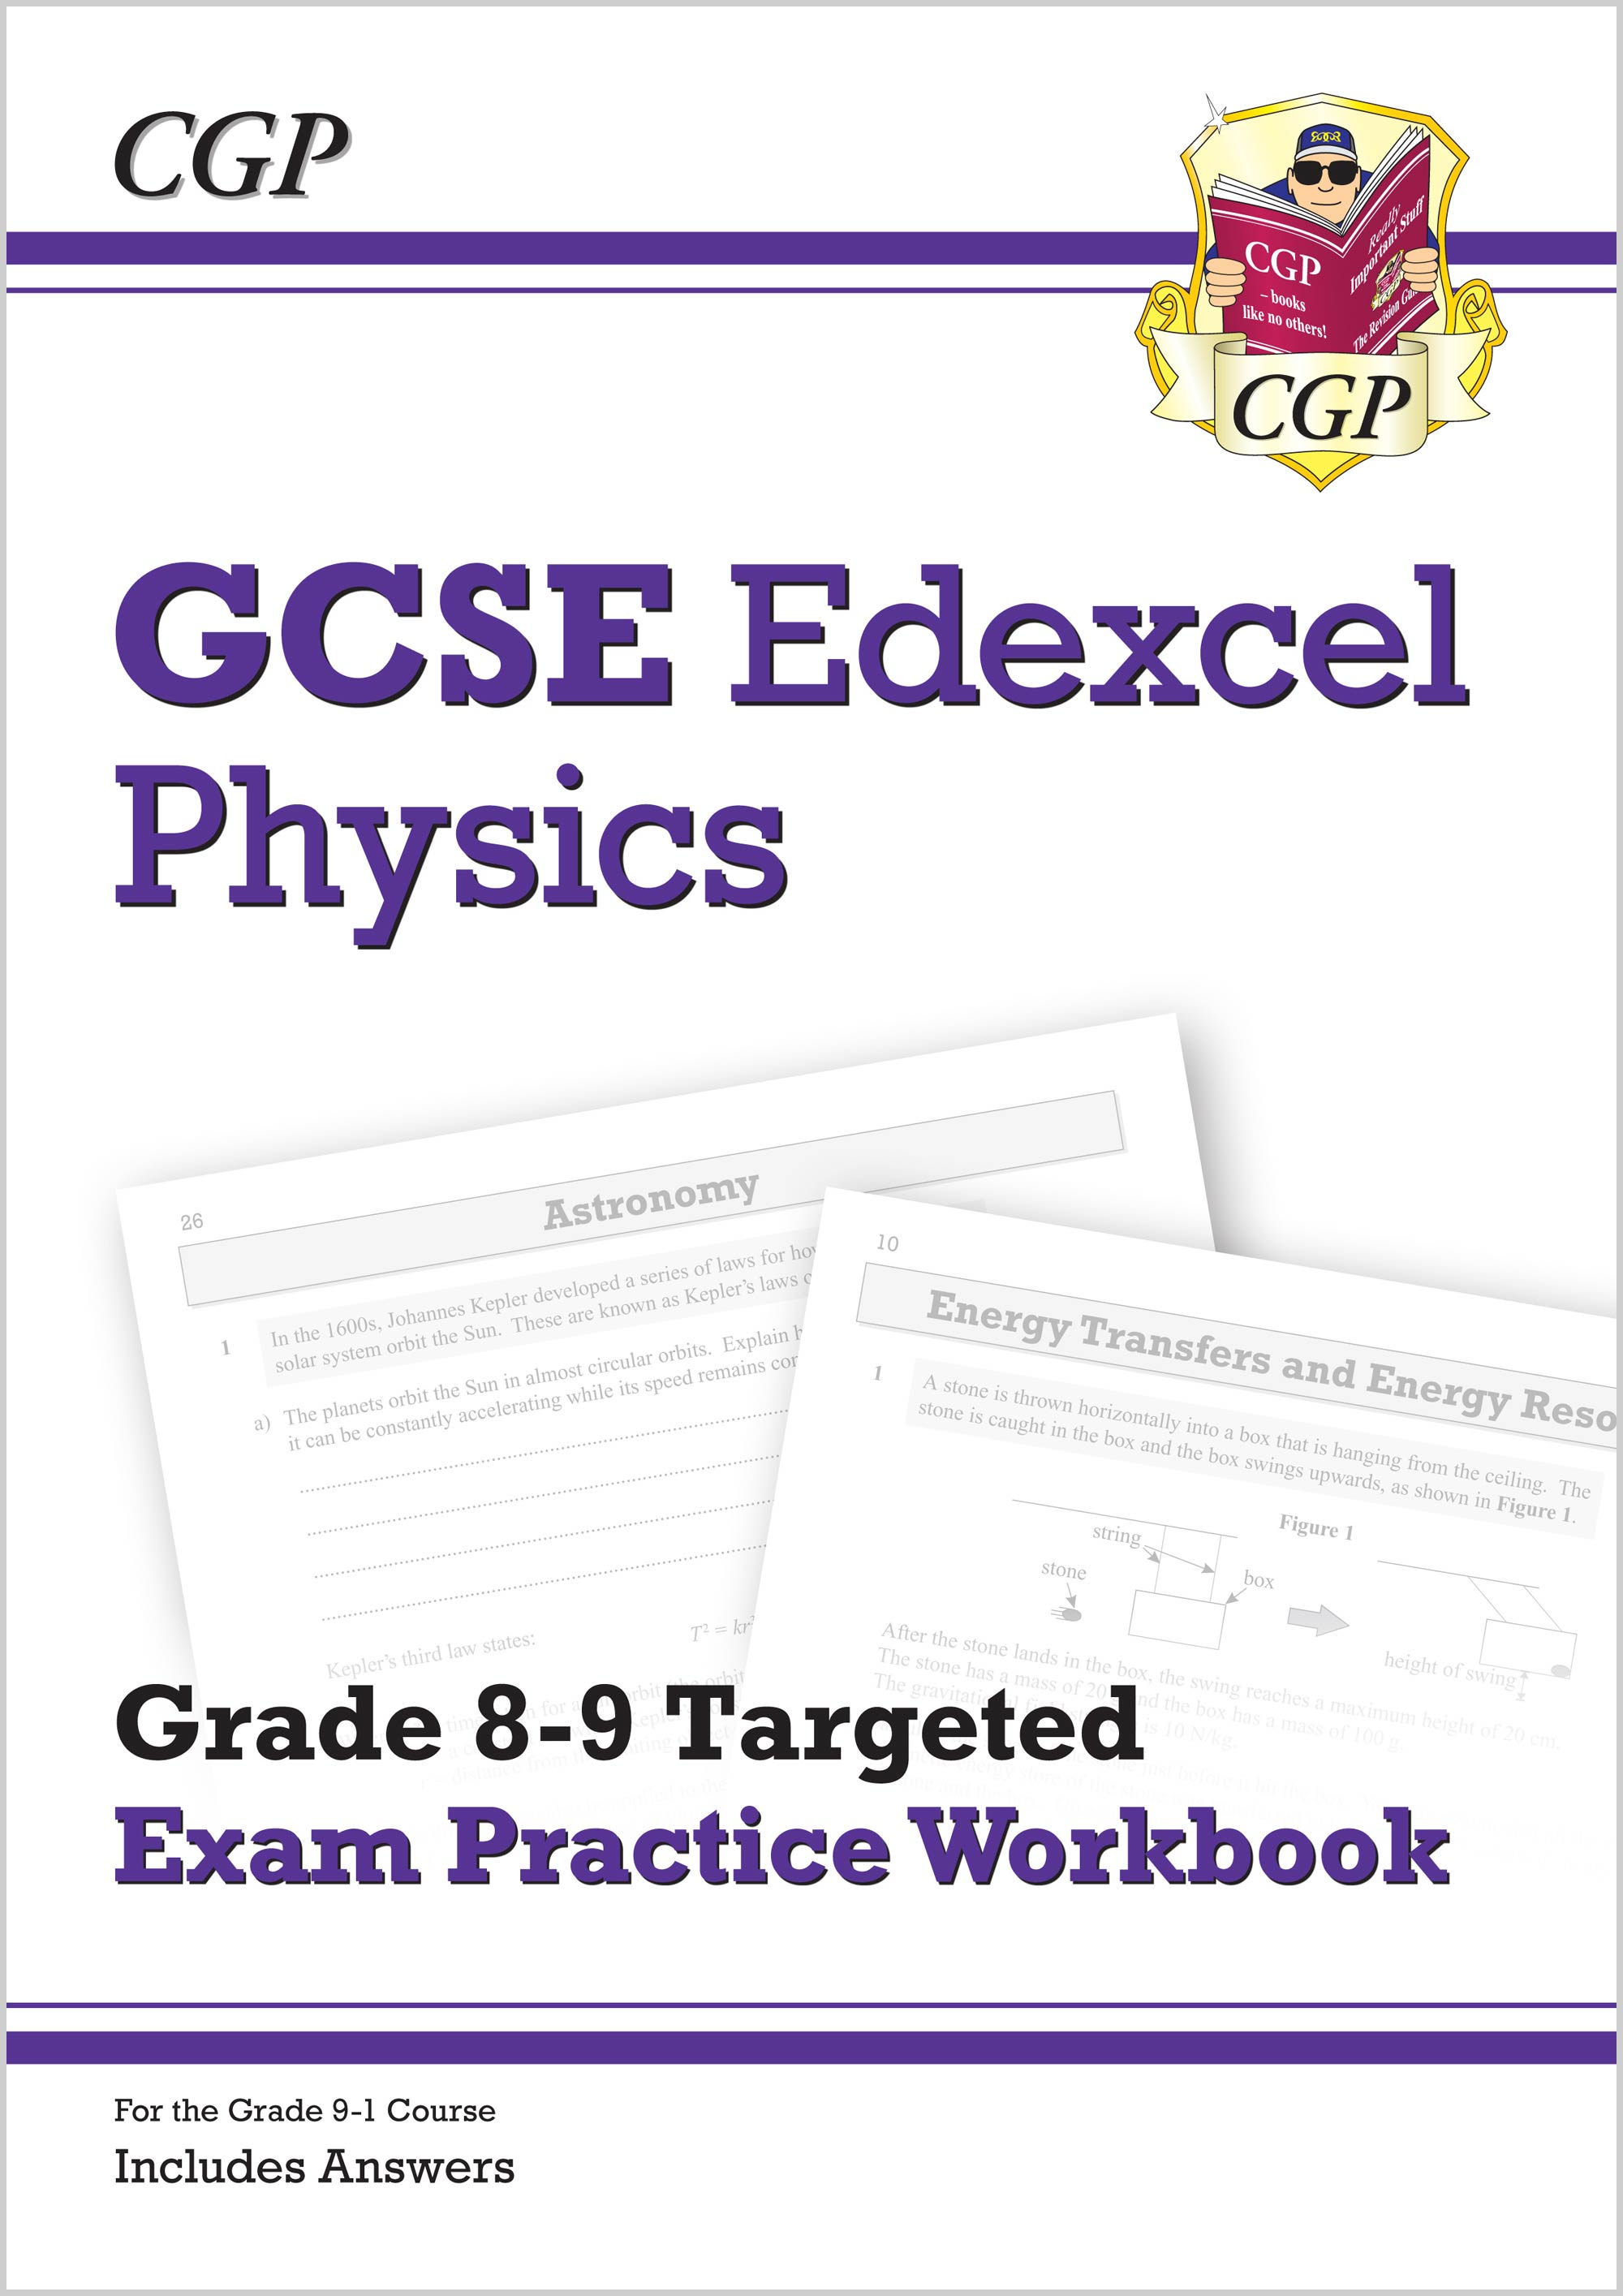 PE9Q41 - GCSE Physics Edexcel Grade 8-9 Targeted Exam Practice Workbook (includes Answers)